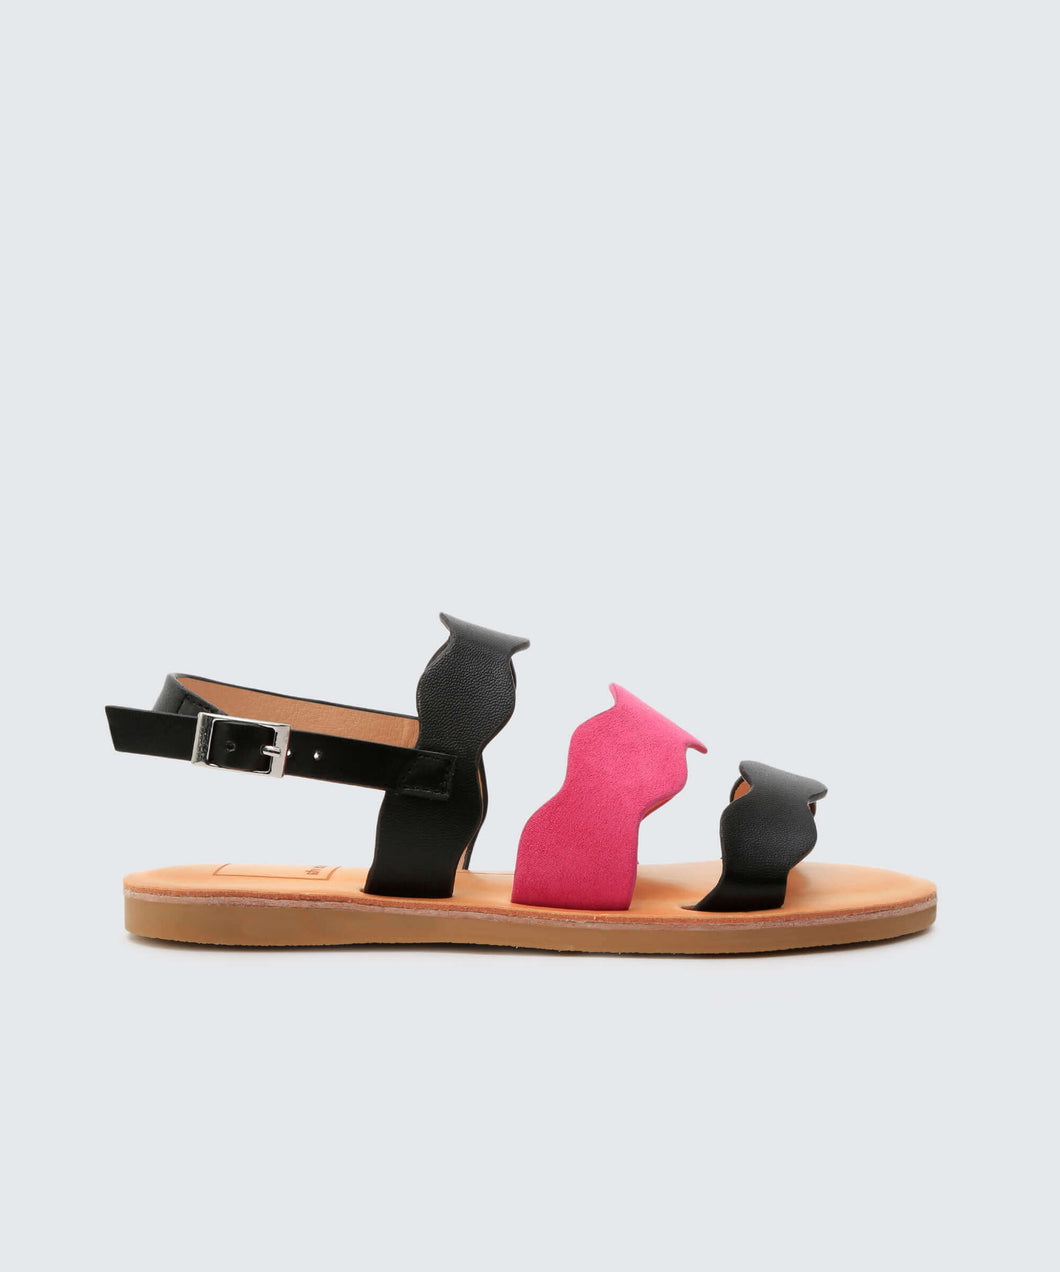 JACKEY SANDALS IN FUCHSIA -   Dolce Vita